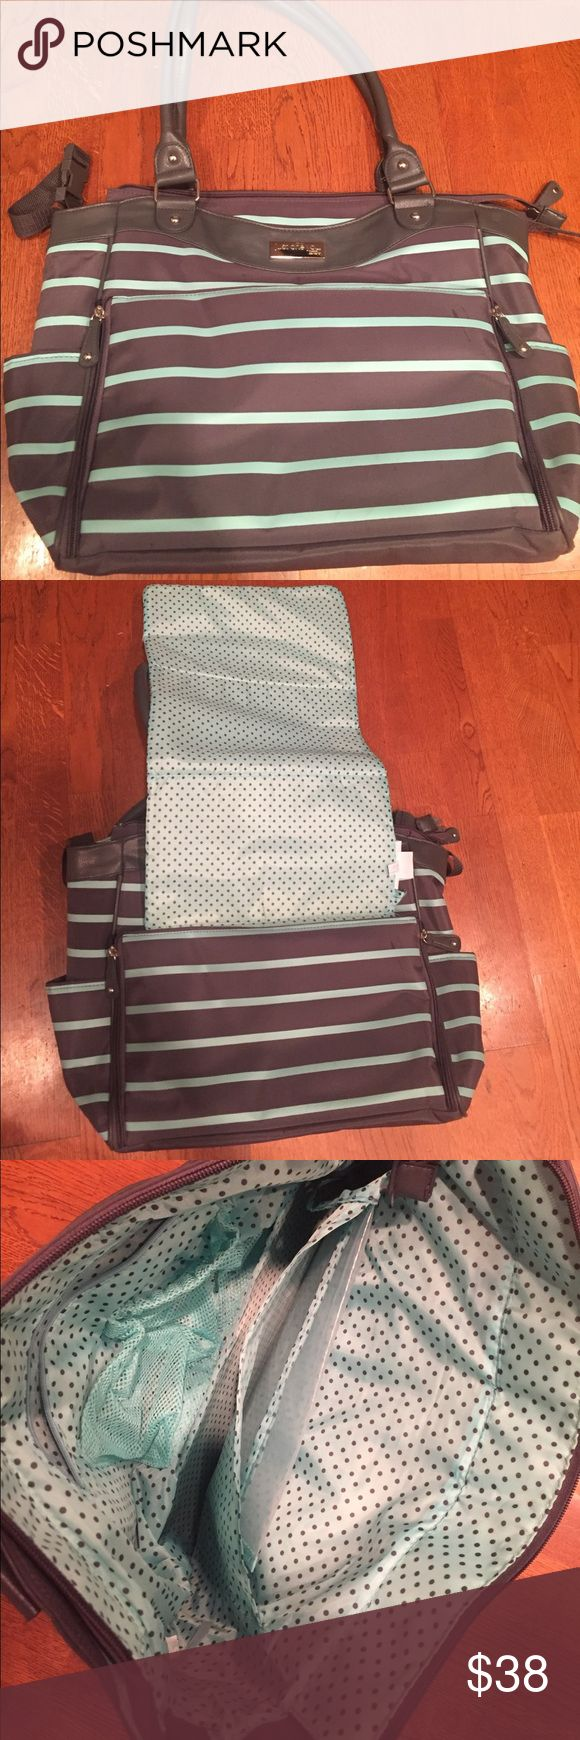 Diaper bag Super cute. Used one time. So much storage! Carter's Bags Baby Bags